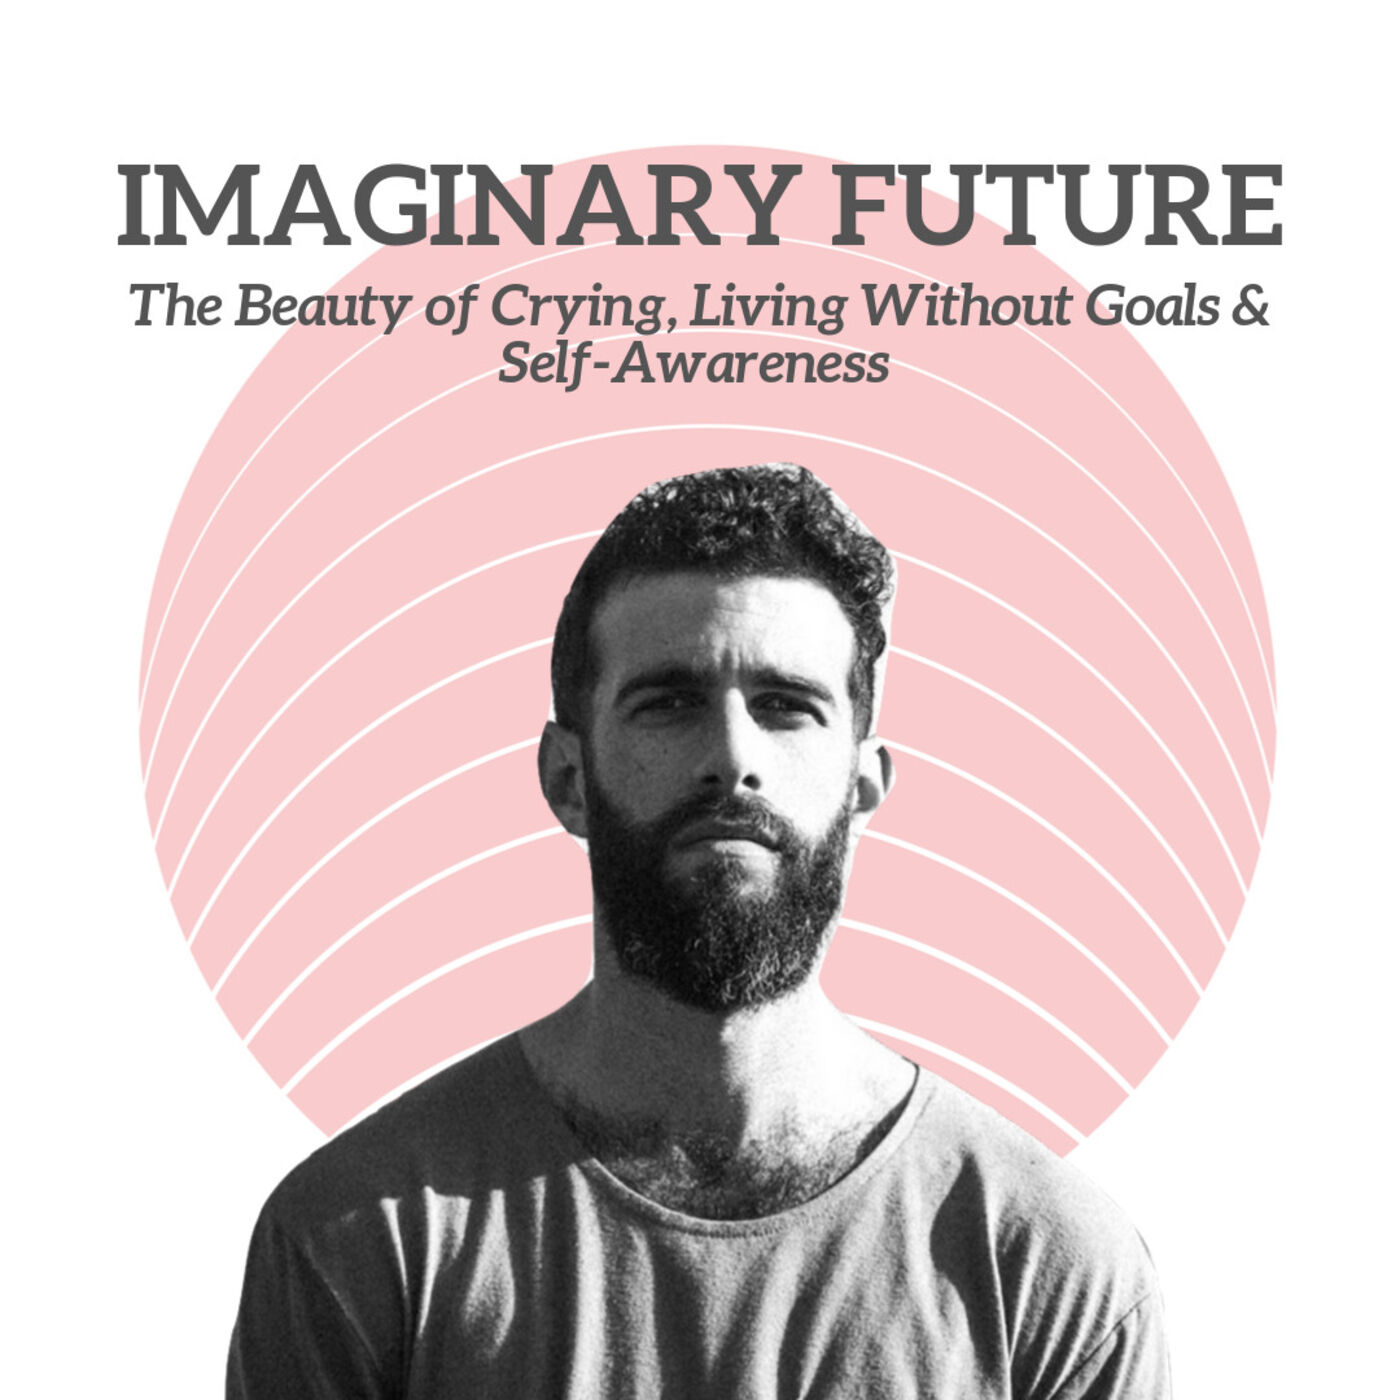 Imaginary Future - The Beauty of Crying, Living Without Goals & Self-Awareness